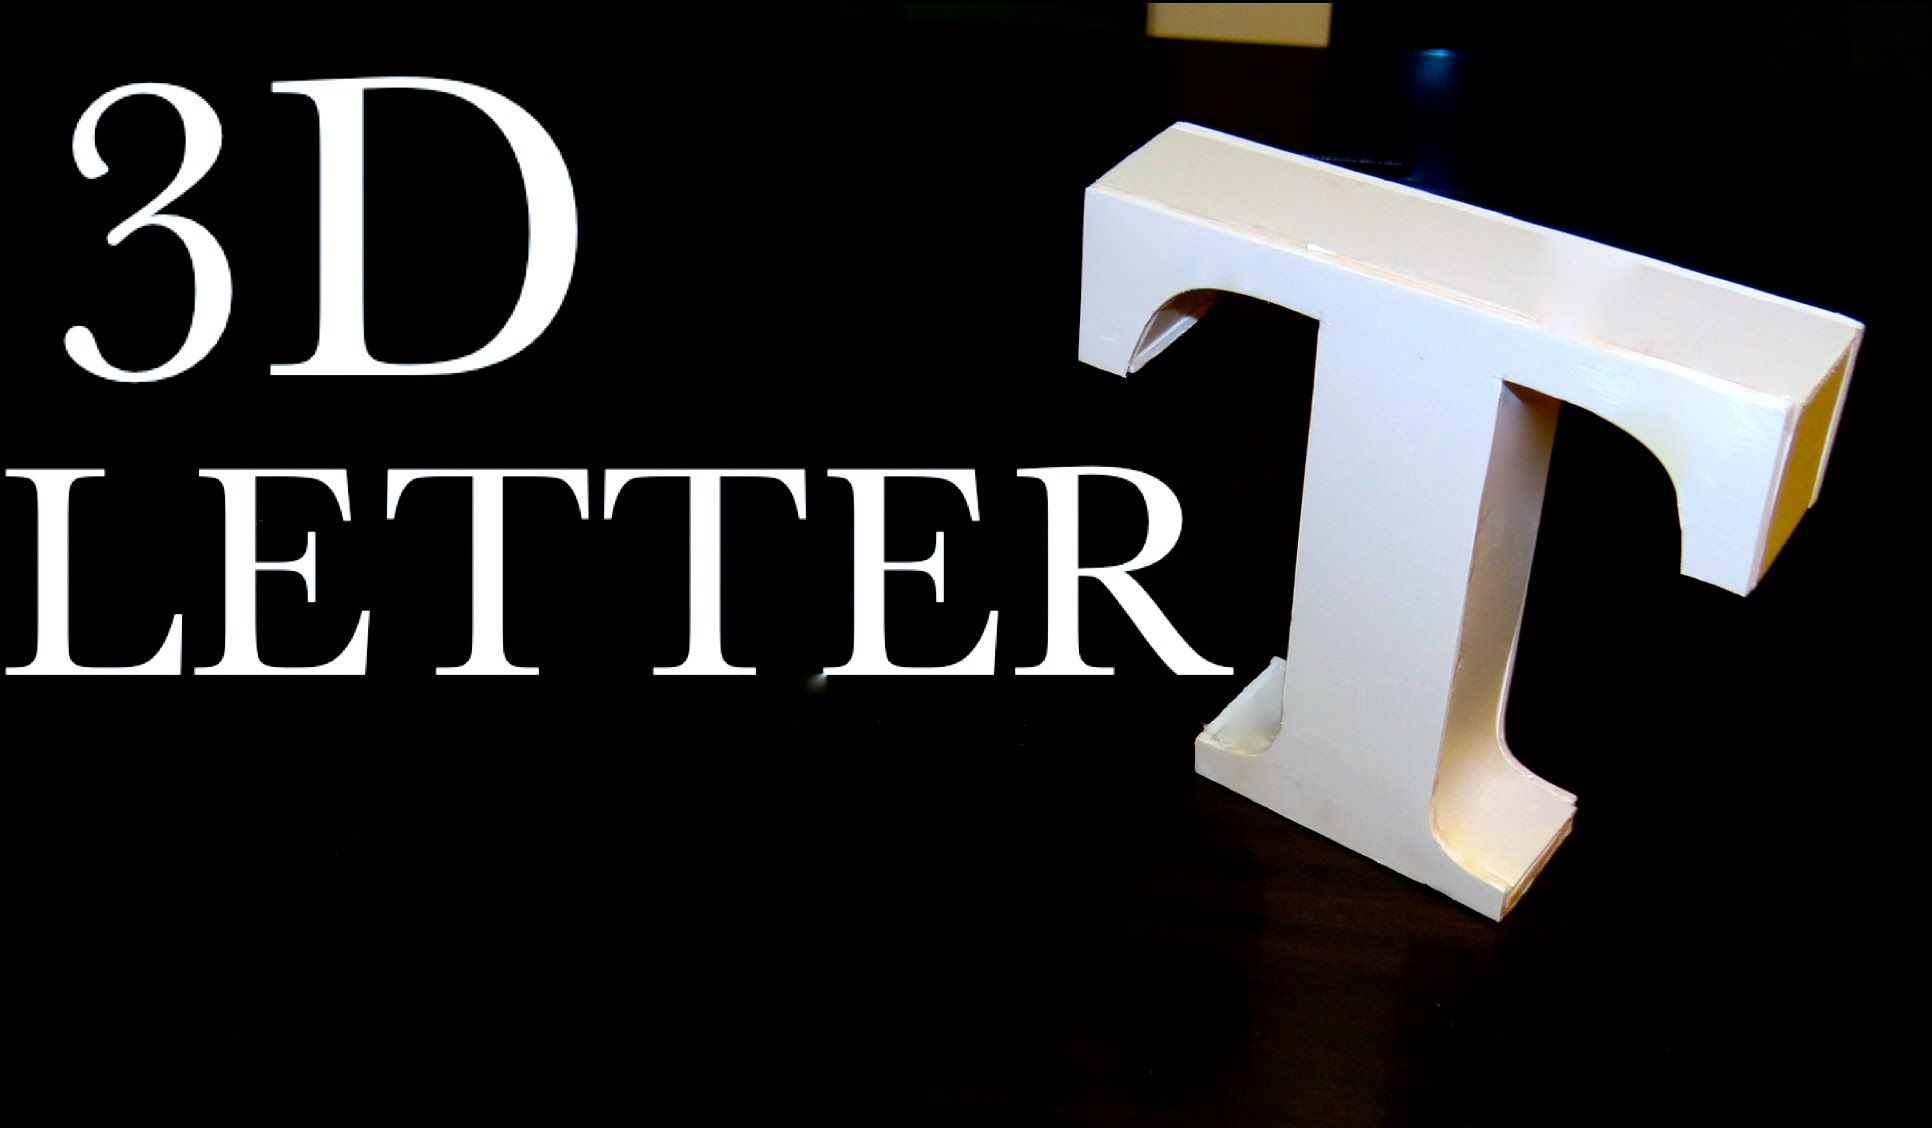 How To Make A 3d Letter Out Of Foam Board Foam Board Diy Foam Letters Foam Carving